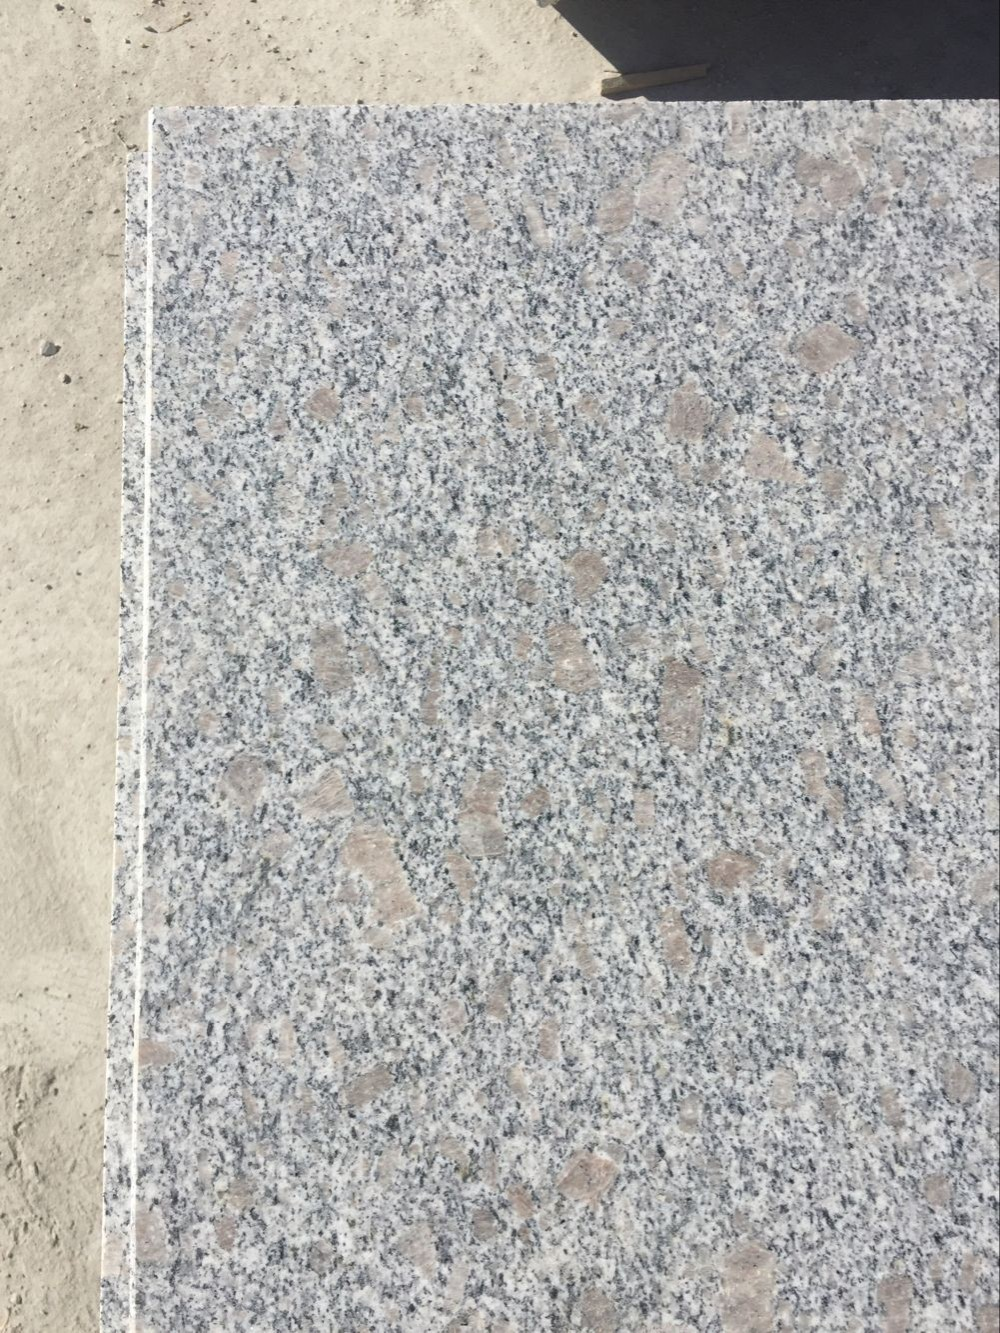 G341 Kerbstone Granite Kerb Stones Prices Granite Kerb